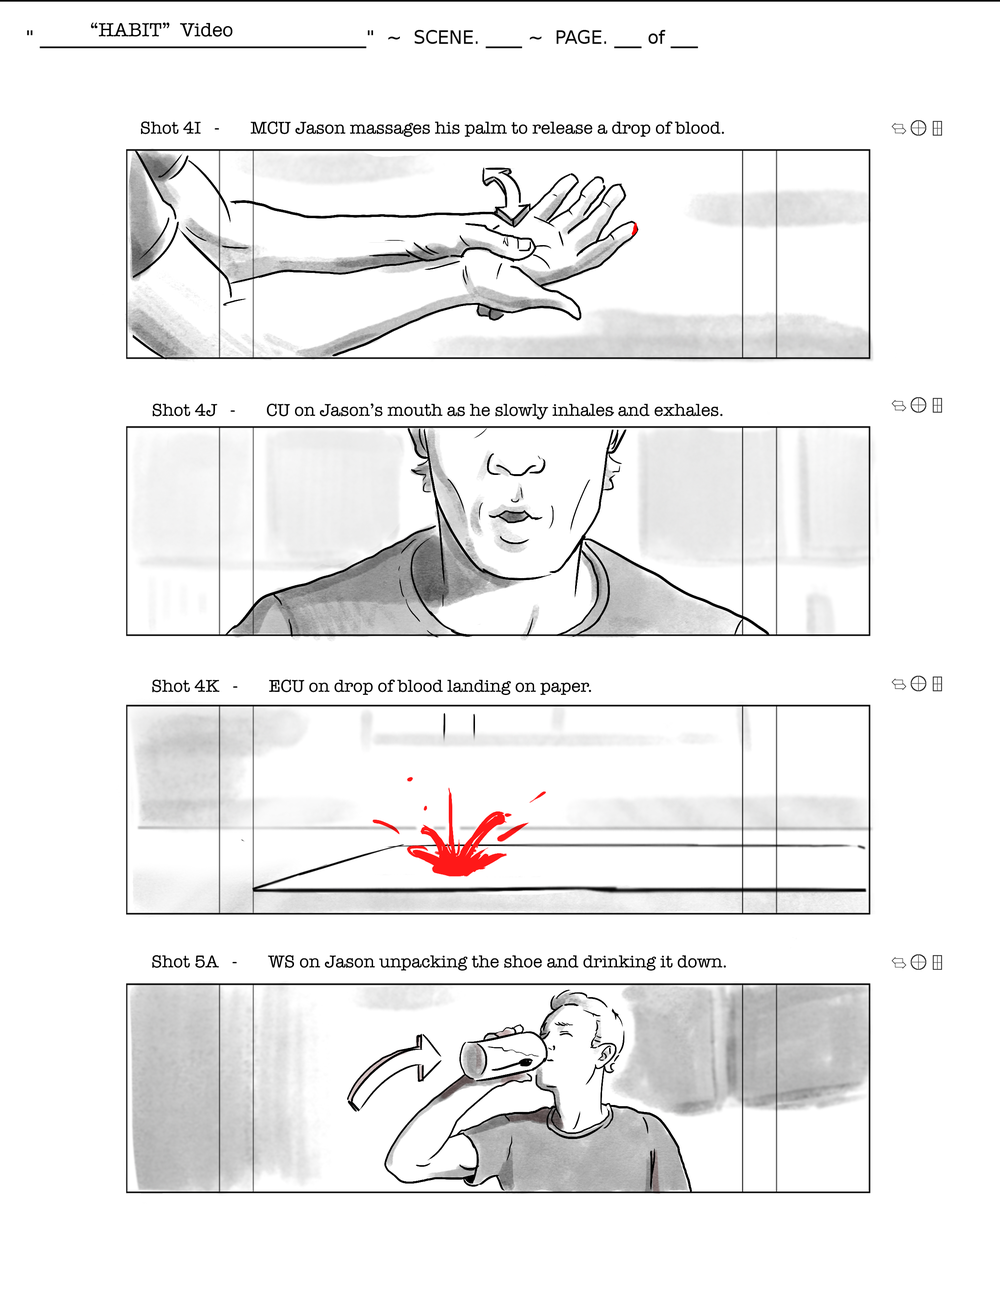 6_Habit_Storyboards_Page_6.png